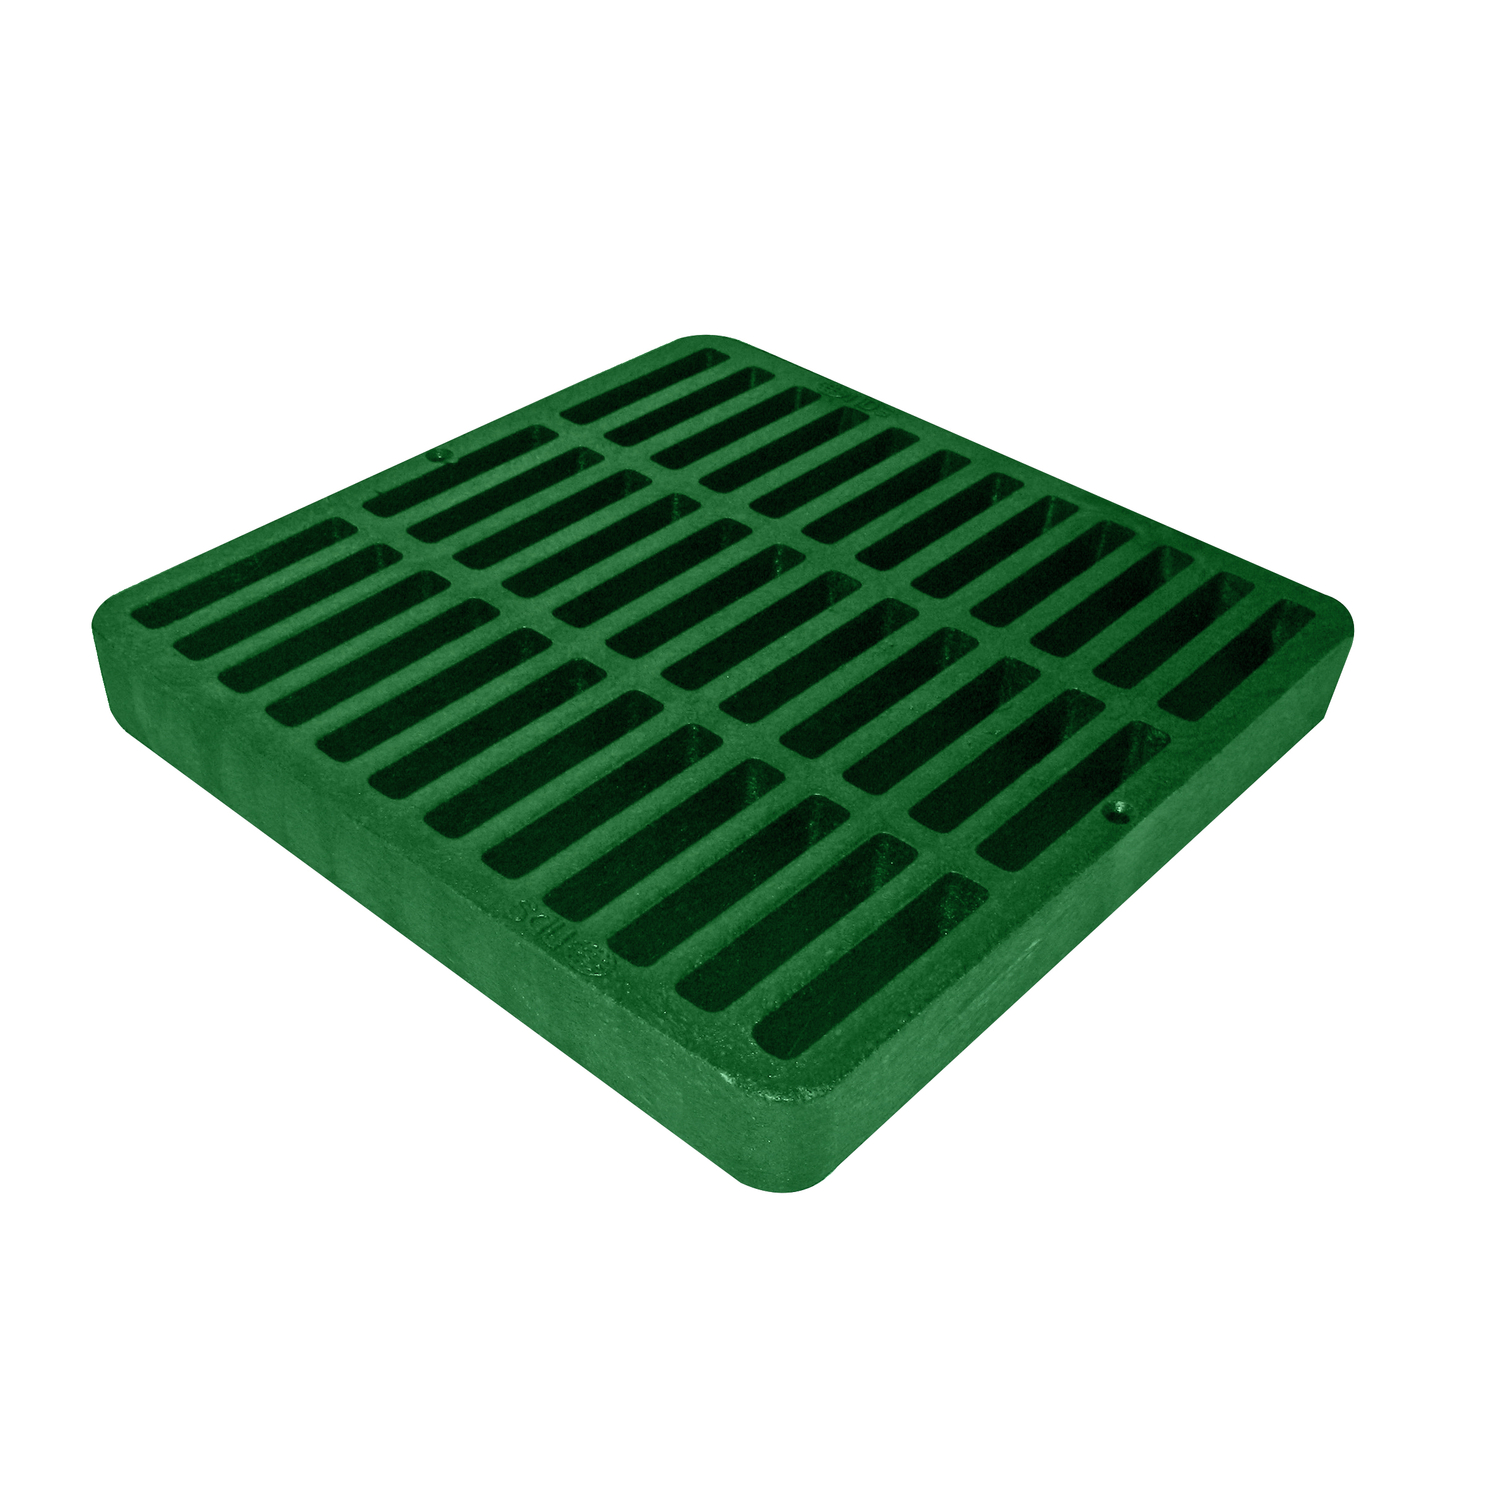 NDS  N/A  Green  Polyolefin  Square  Square Grate